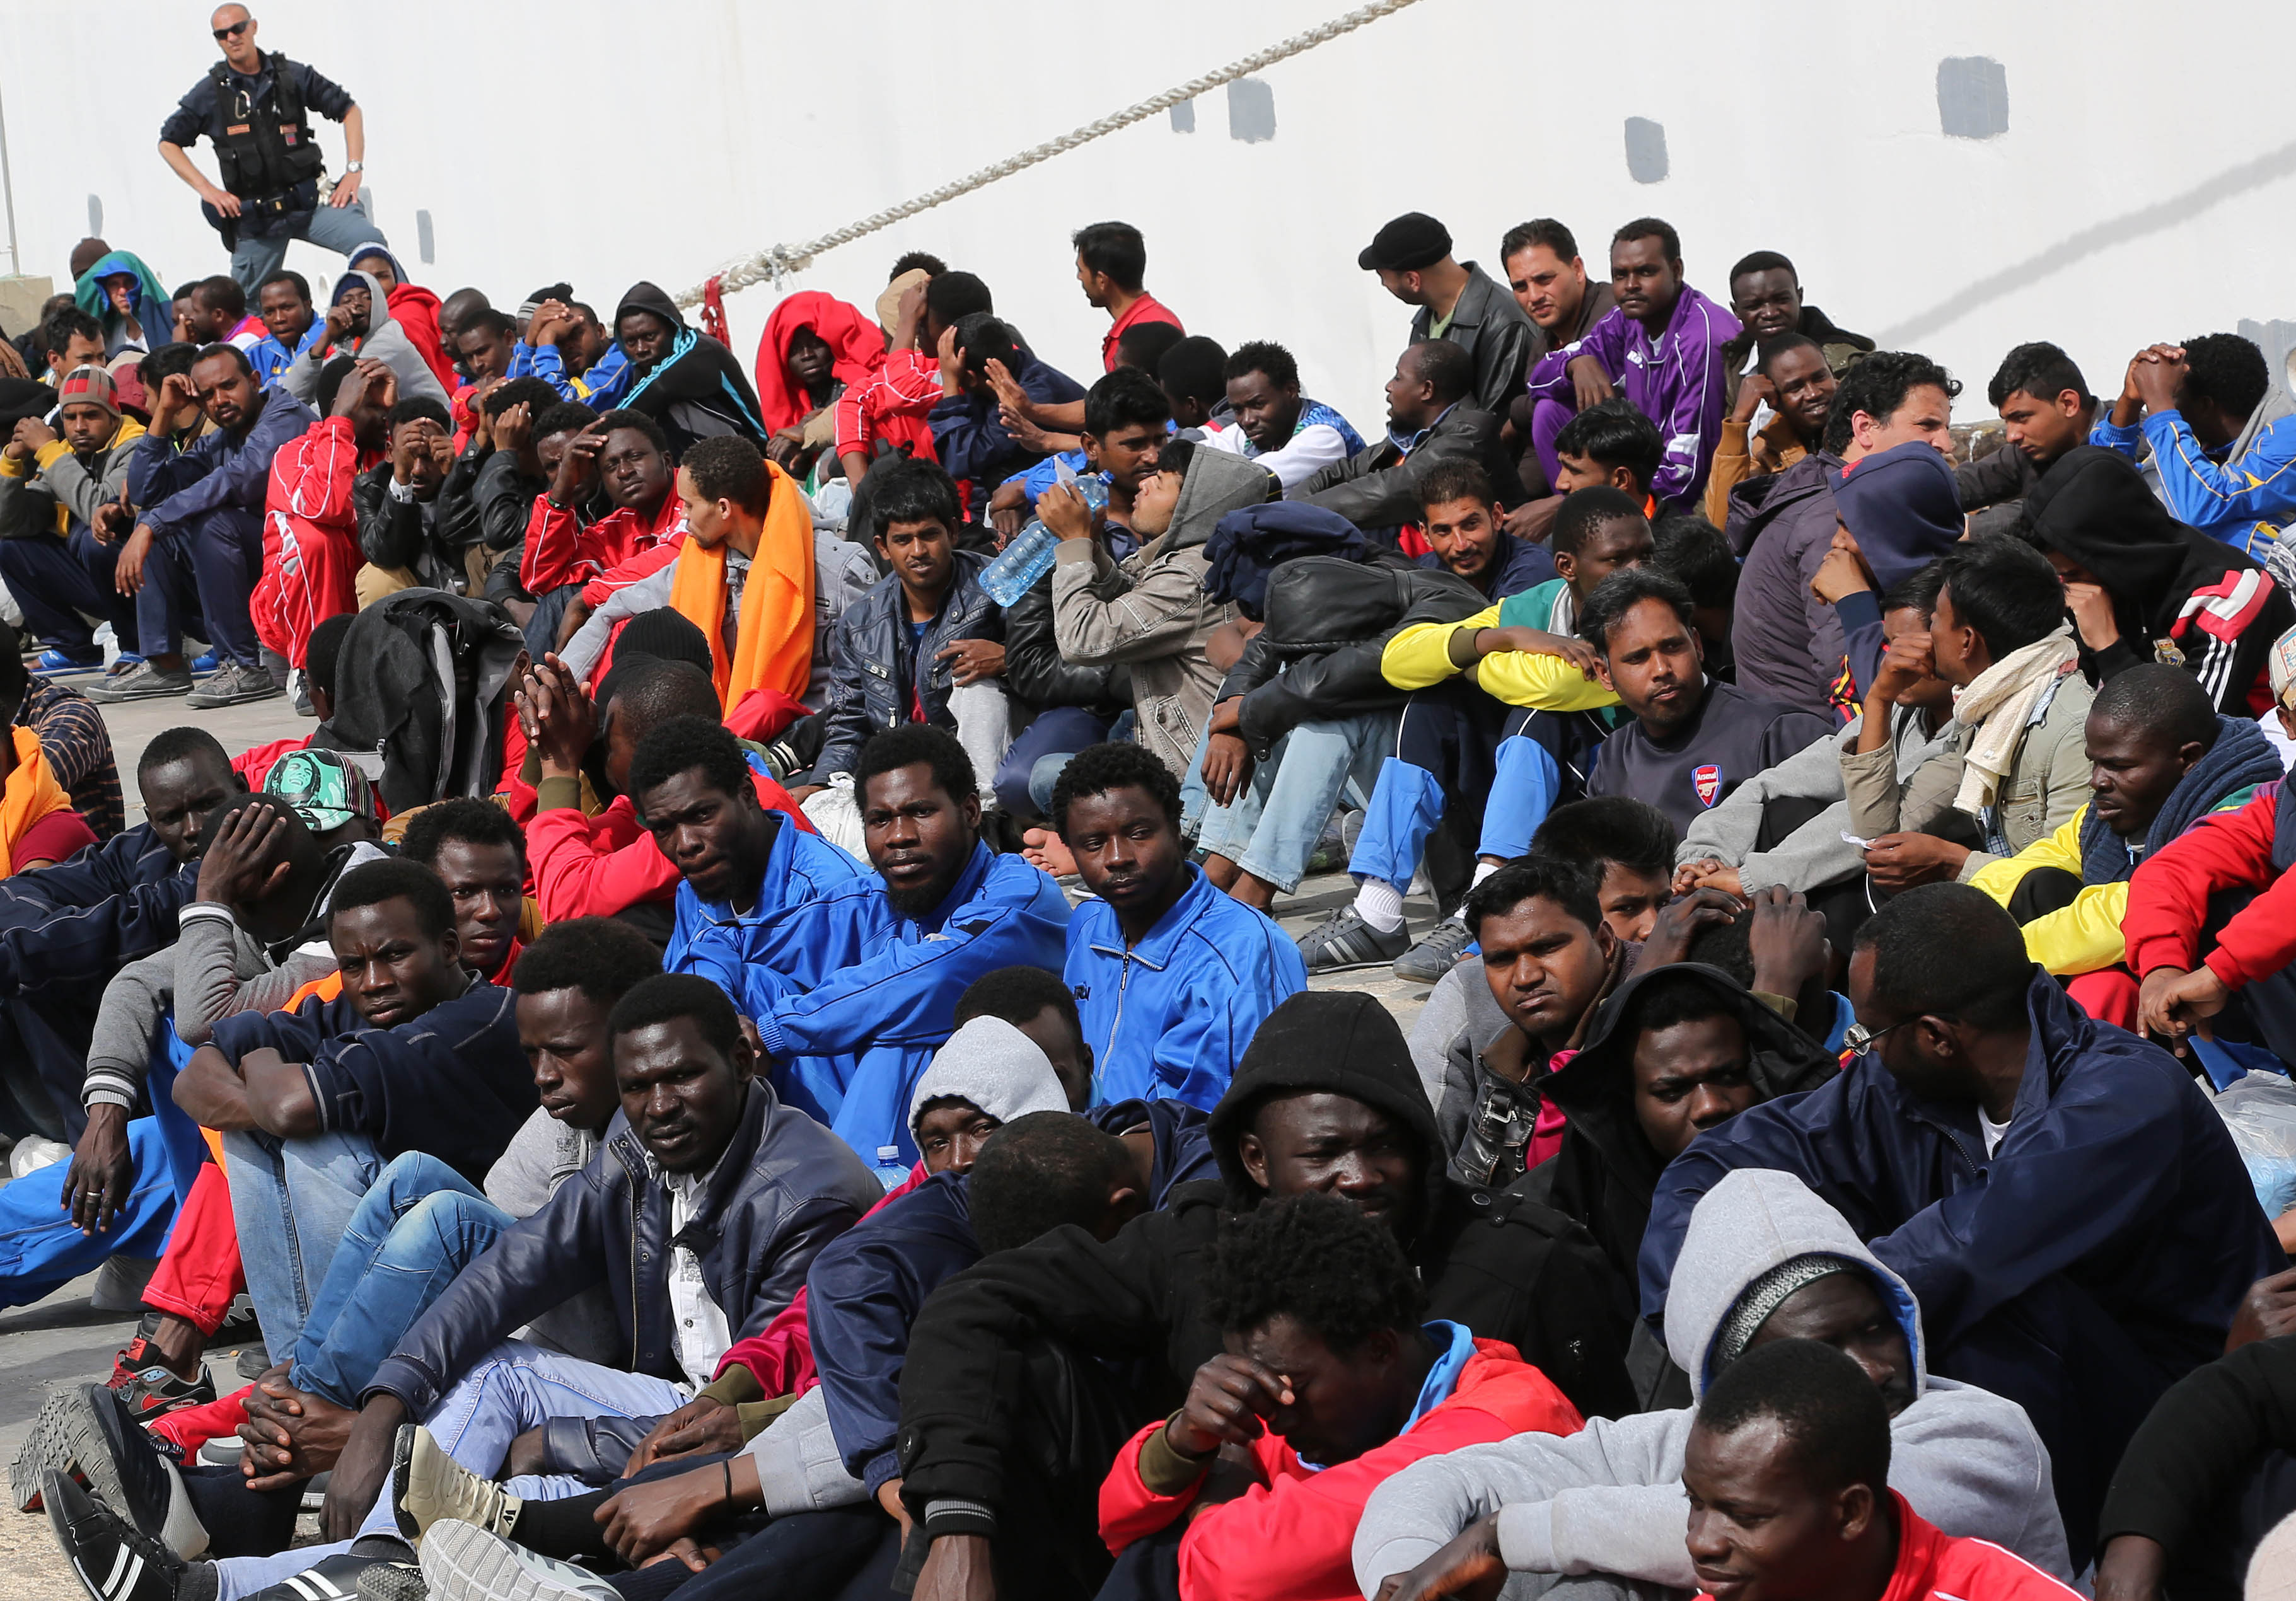 Muslim migrants 'threw 12 Christians overboard' because they wouldn't stop praying